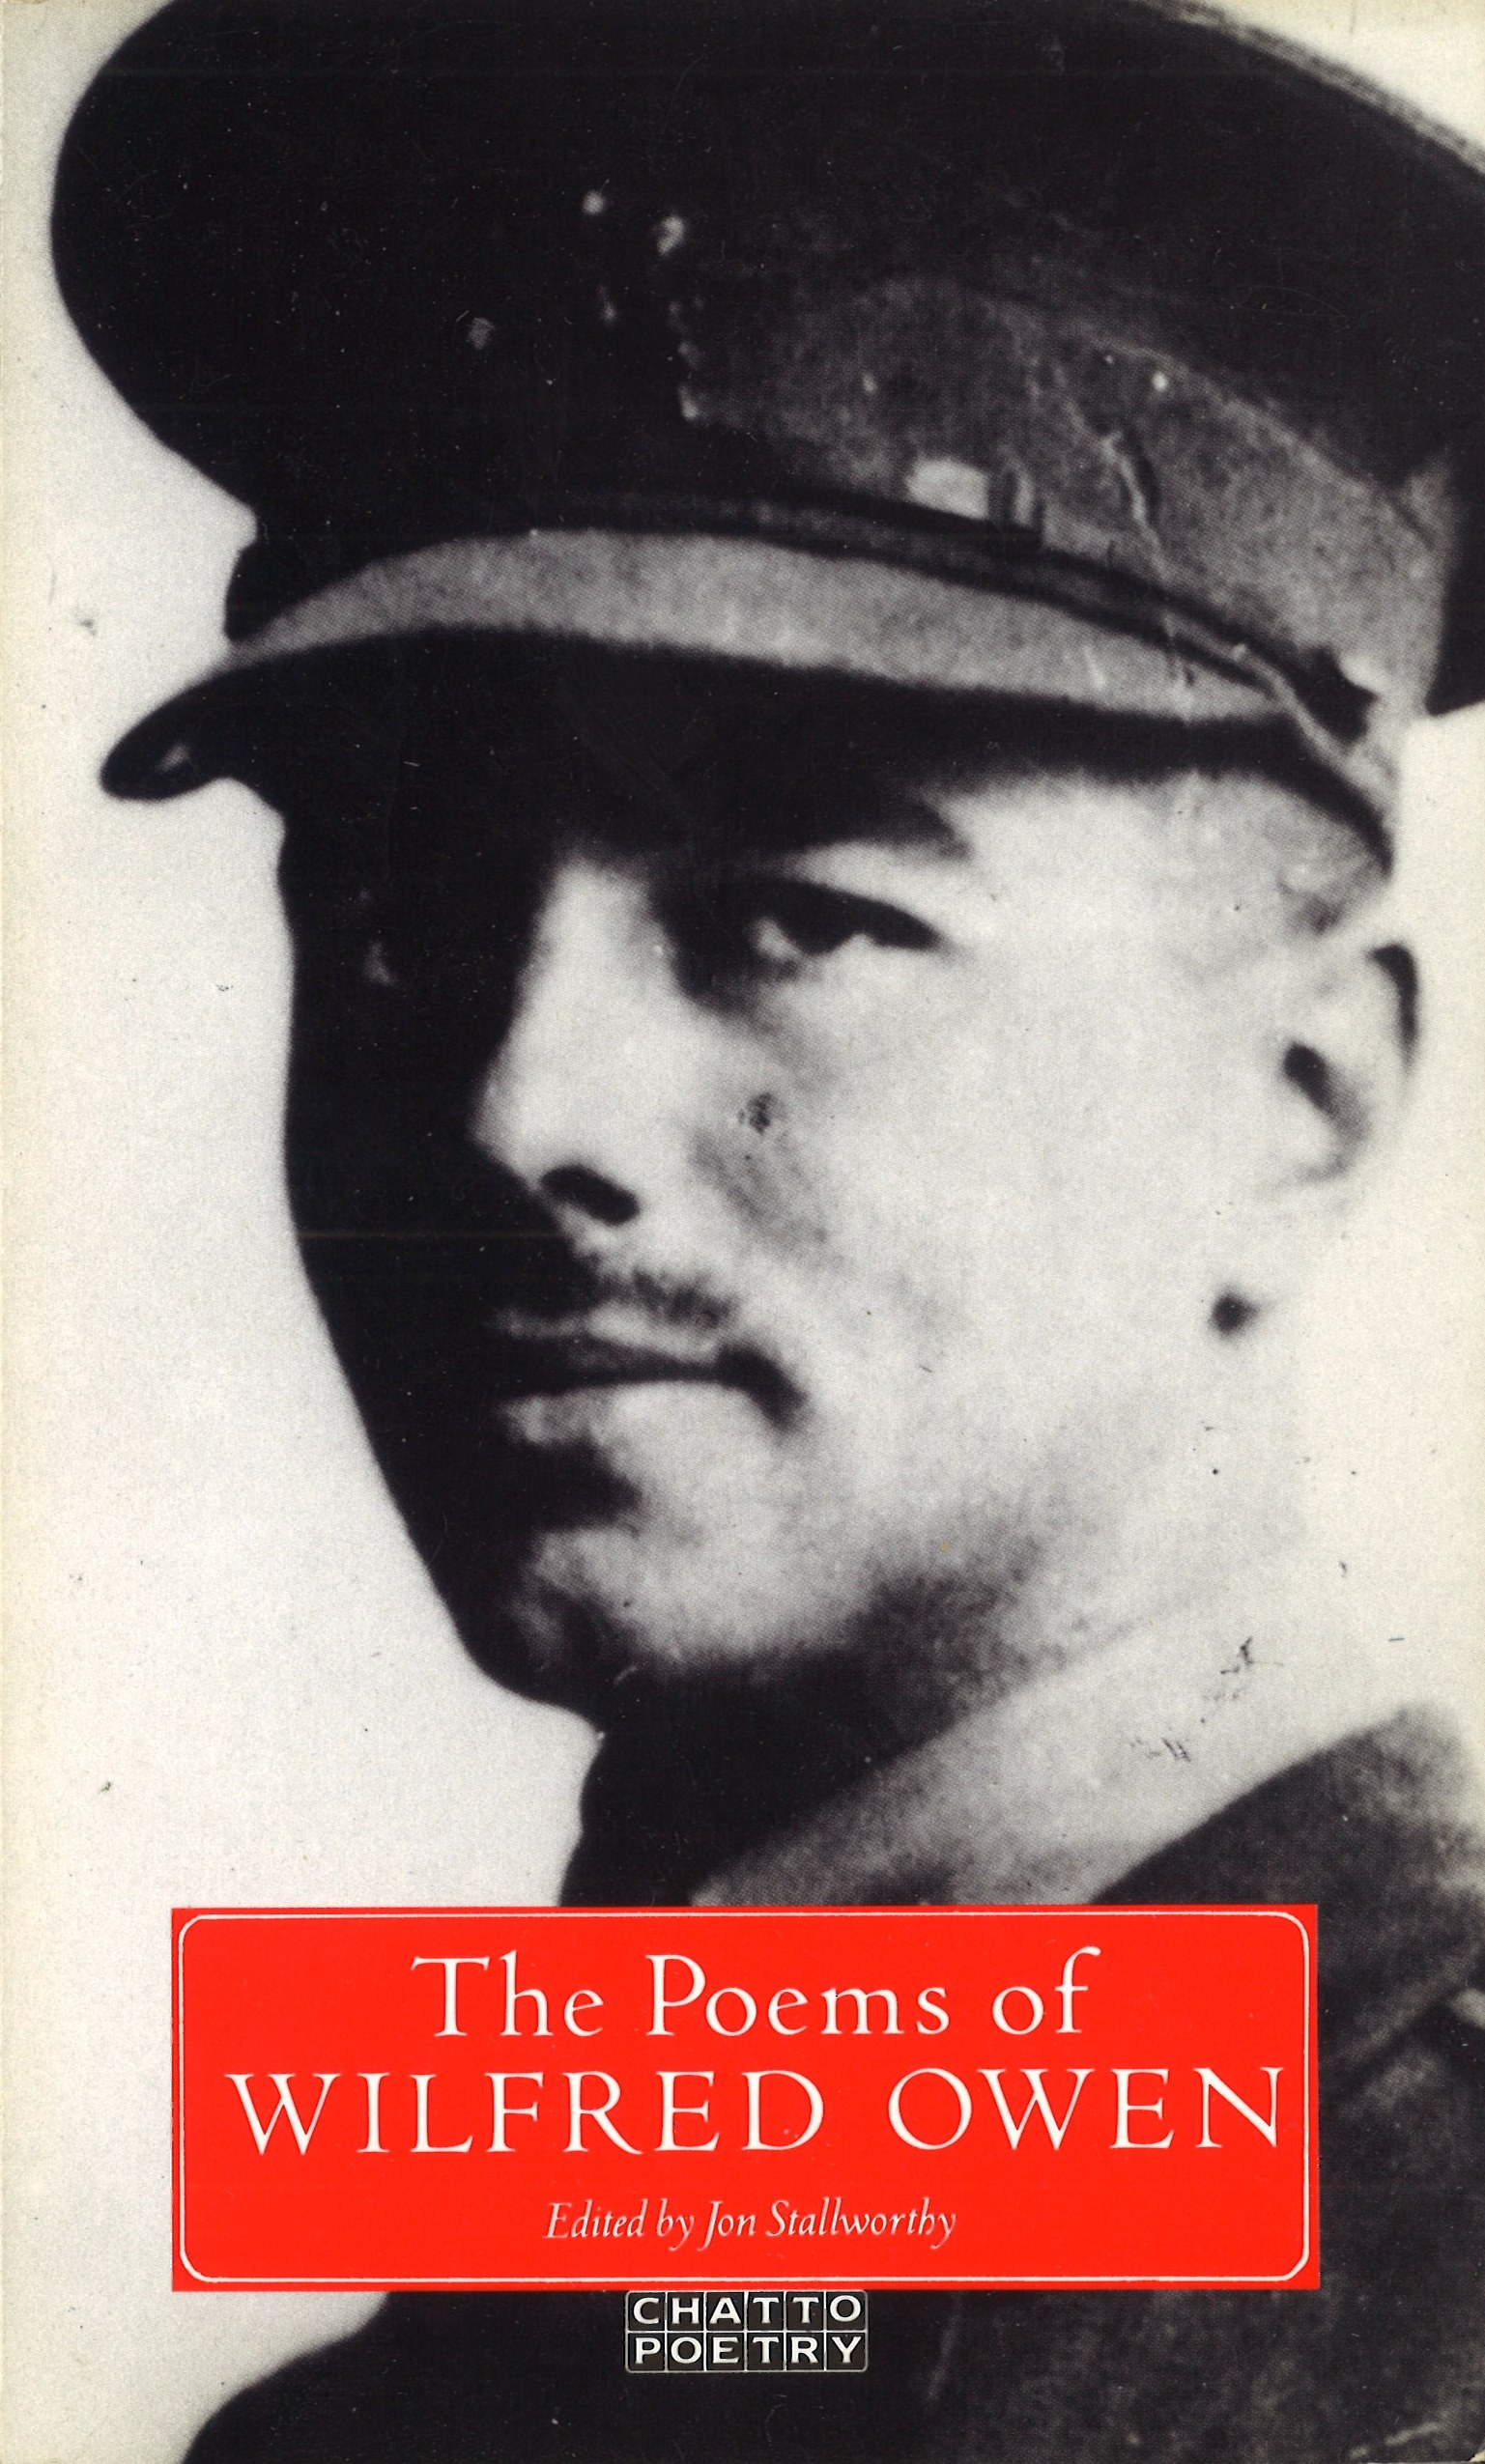 the revelation of the truth of war in the poetry of wilfred owen - close study of texts - wilfred owen essay introduction as an anti-war poet, wilfred owen uses his literary skills to express his perspective on human conflict and the wastage involved with war, the horrors of war, and its negative effects and outcomes.